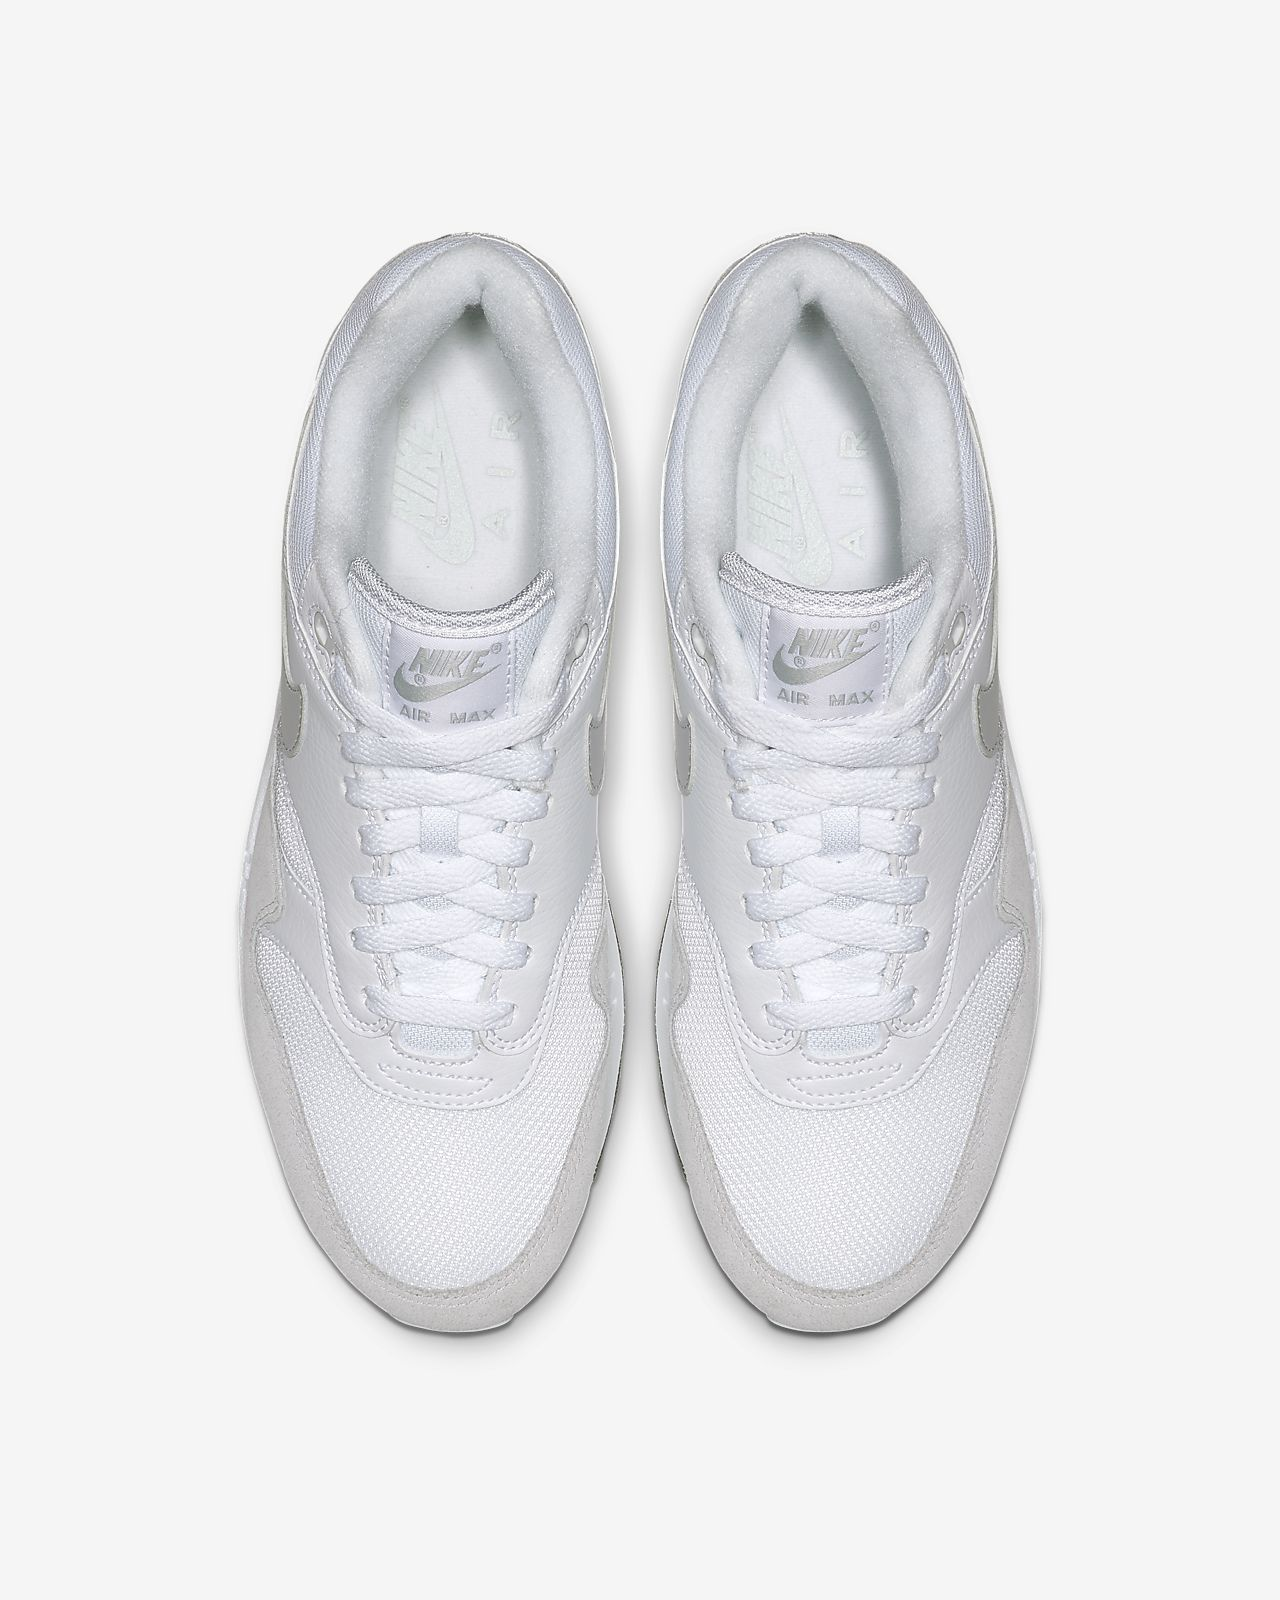 hot sales 64725 14879 ... Chaussure Nike Air Max 1 pour Homme